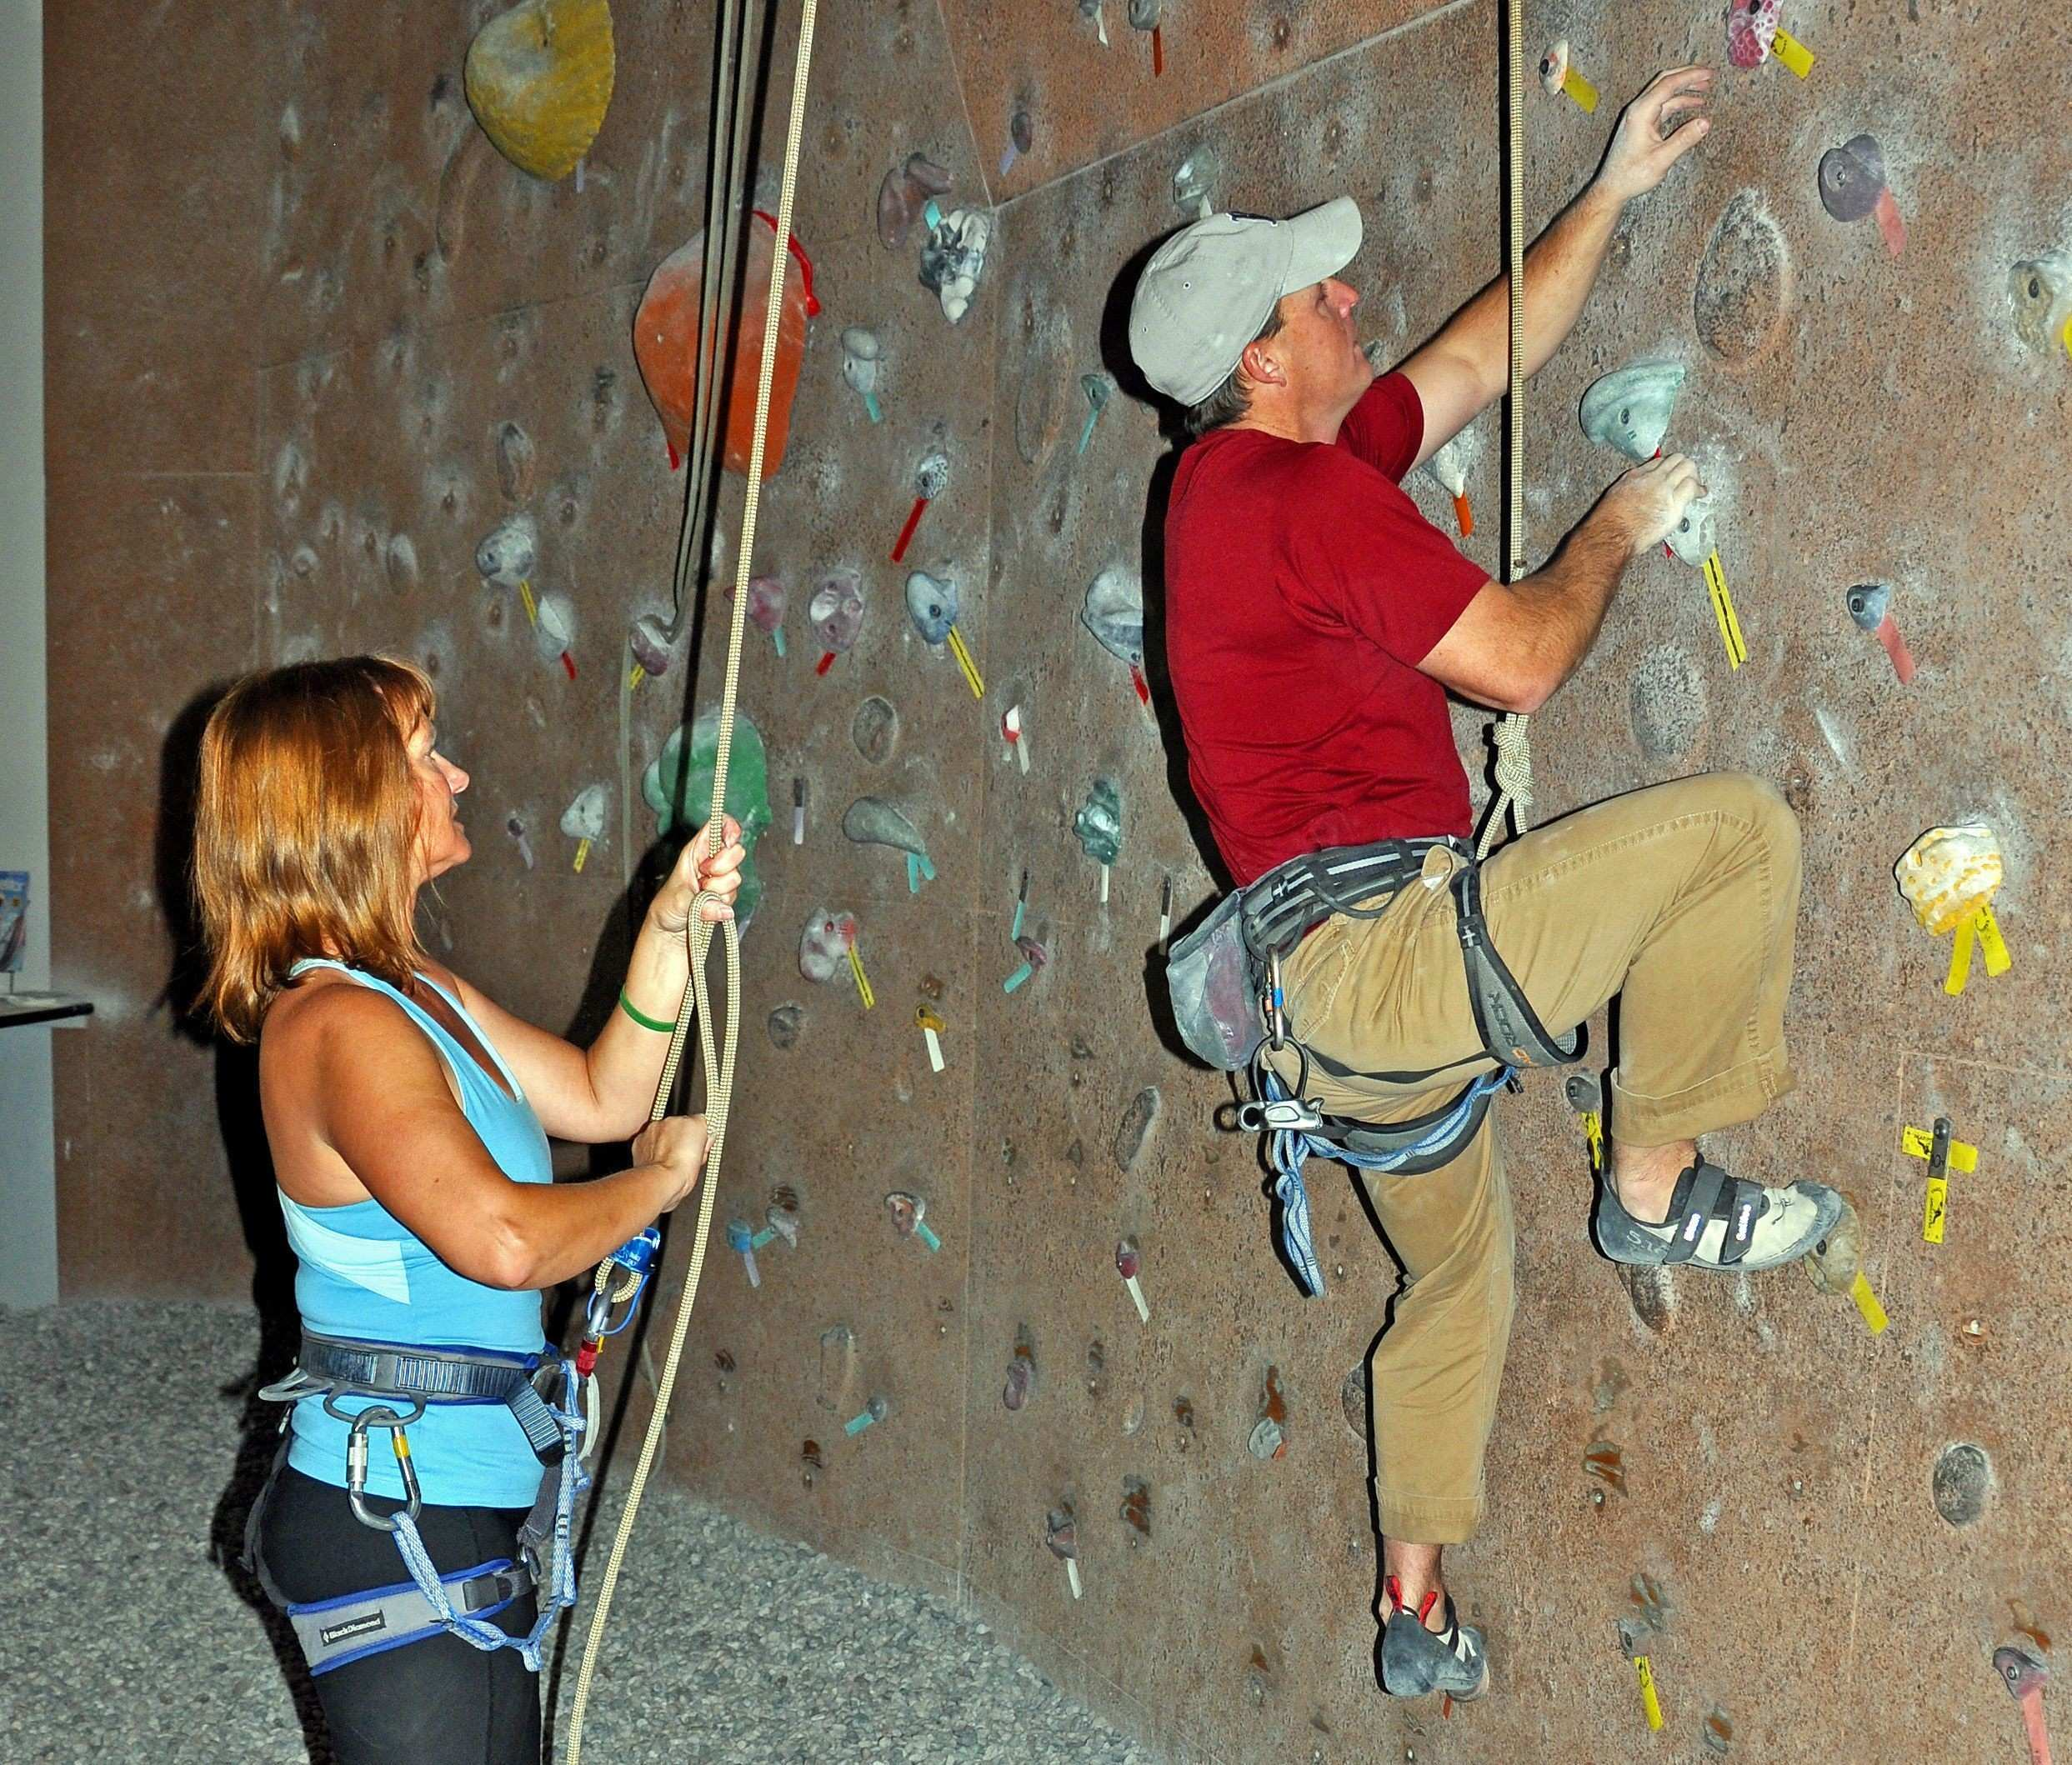 Learn How to Rock Climb at an Indoor Gym